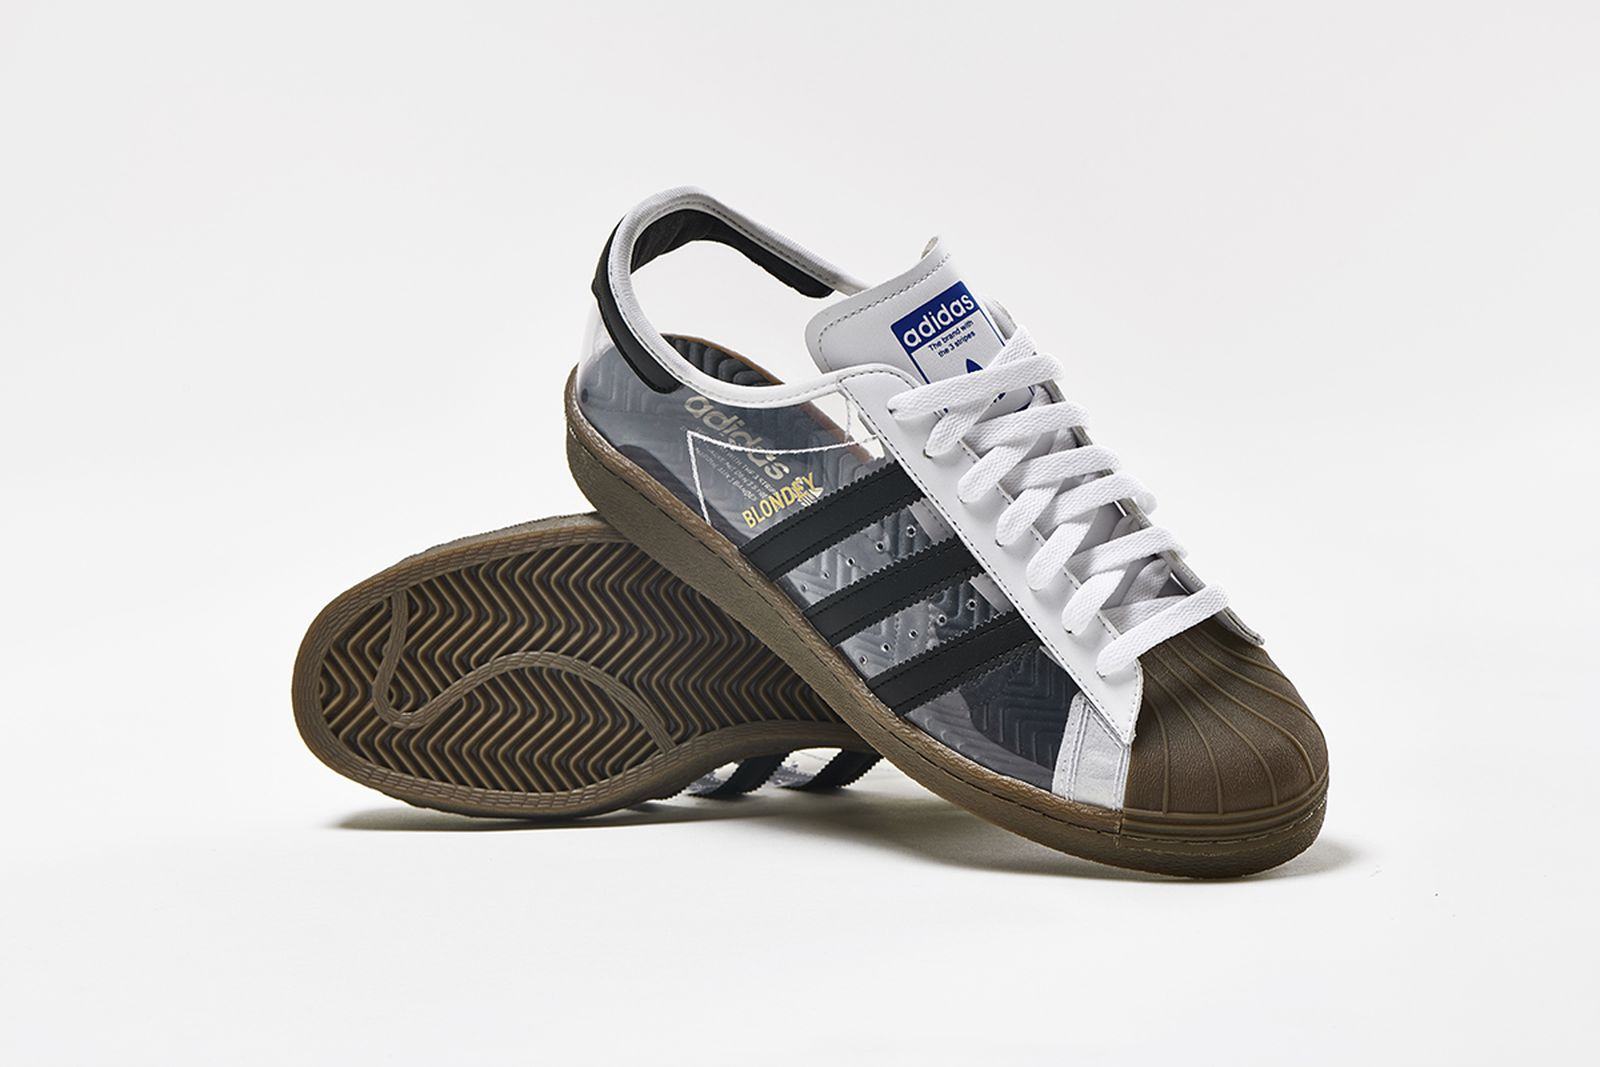 blondey-mccoy-adidas-superstar-80s-clear-release-date-price-1-02